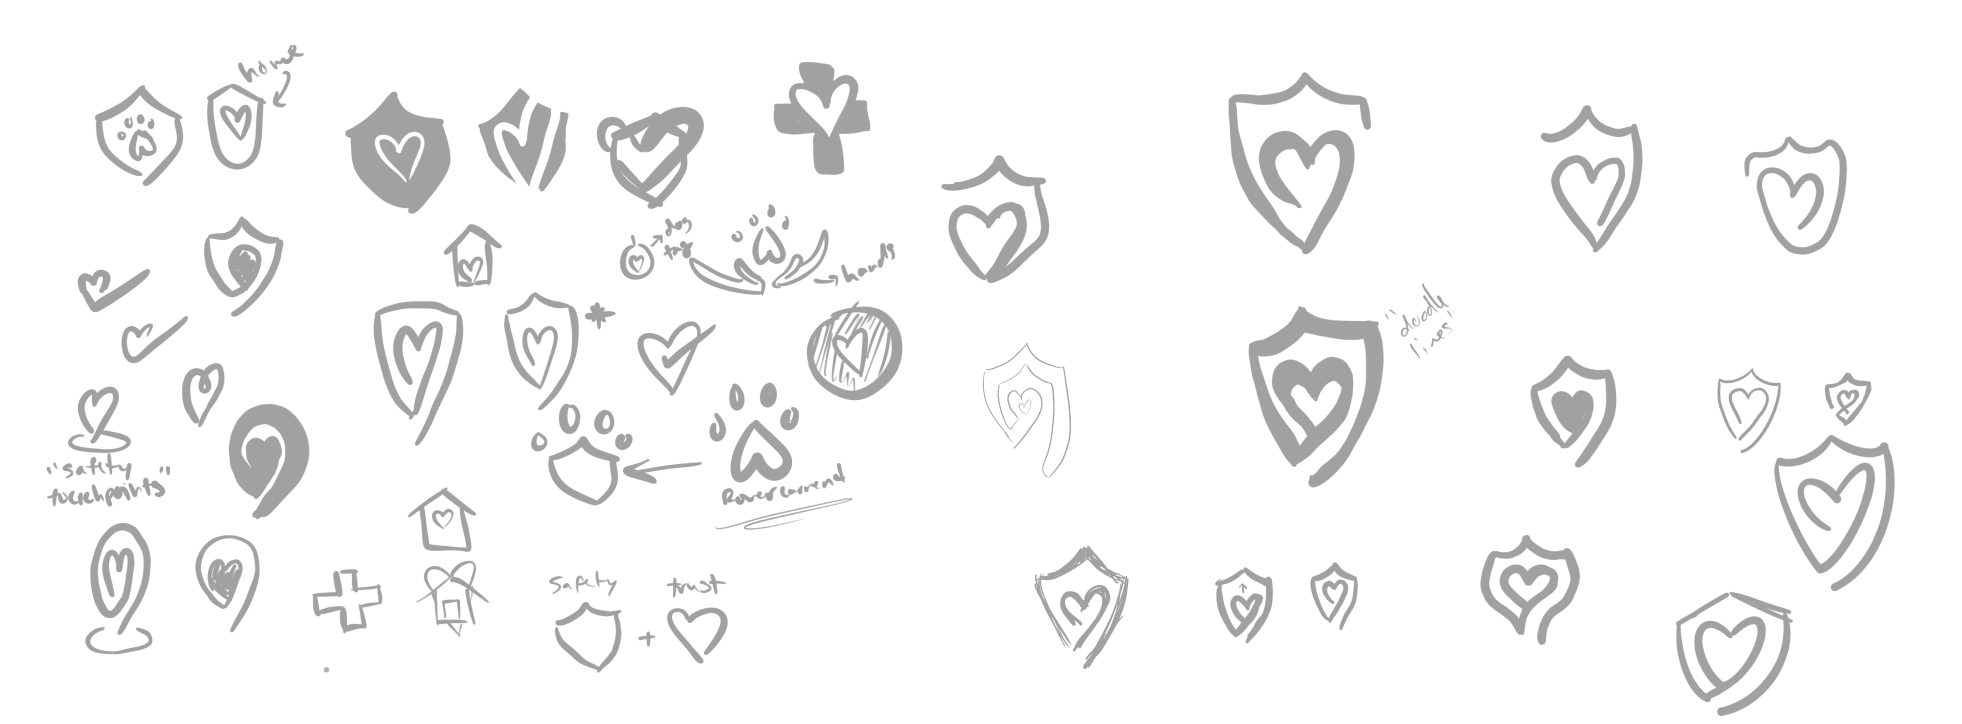 Trust & Safety Sketches